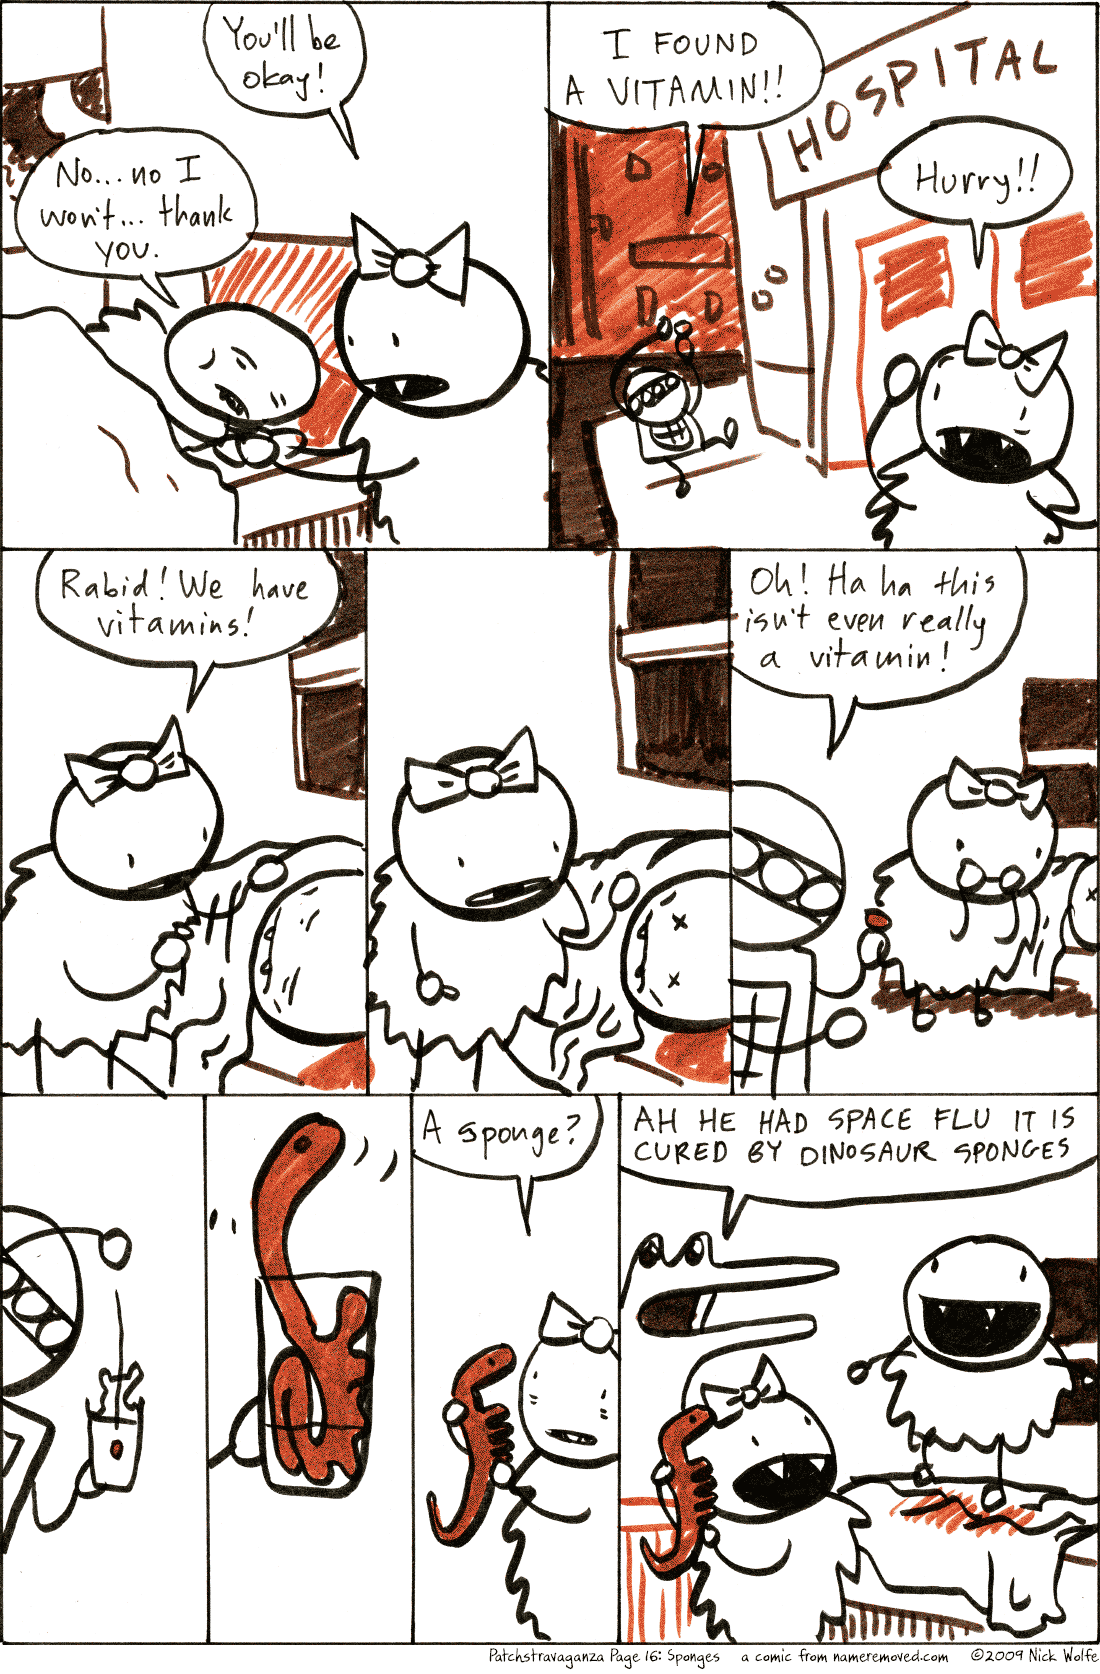 Patchstravaganza Page 16: Sponges